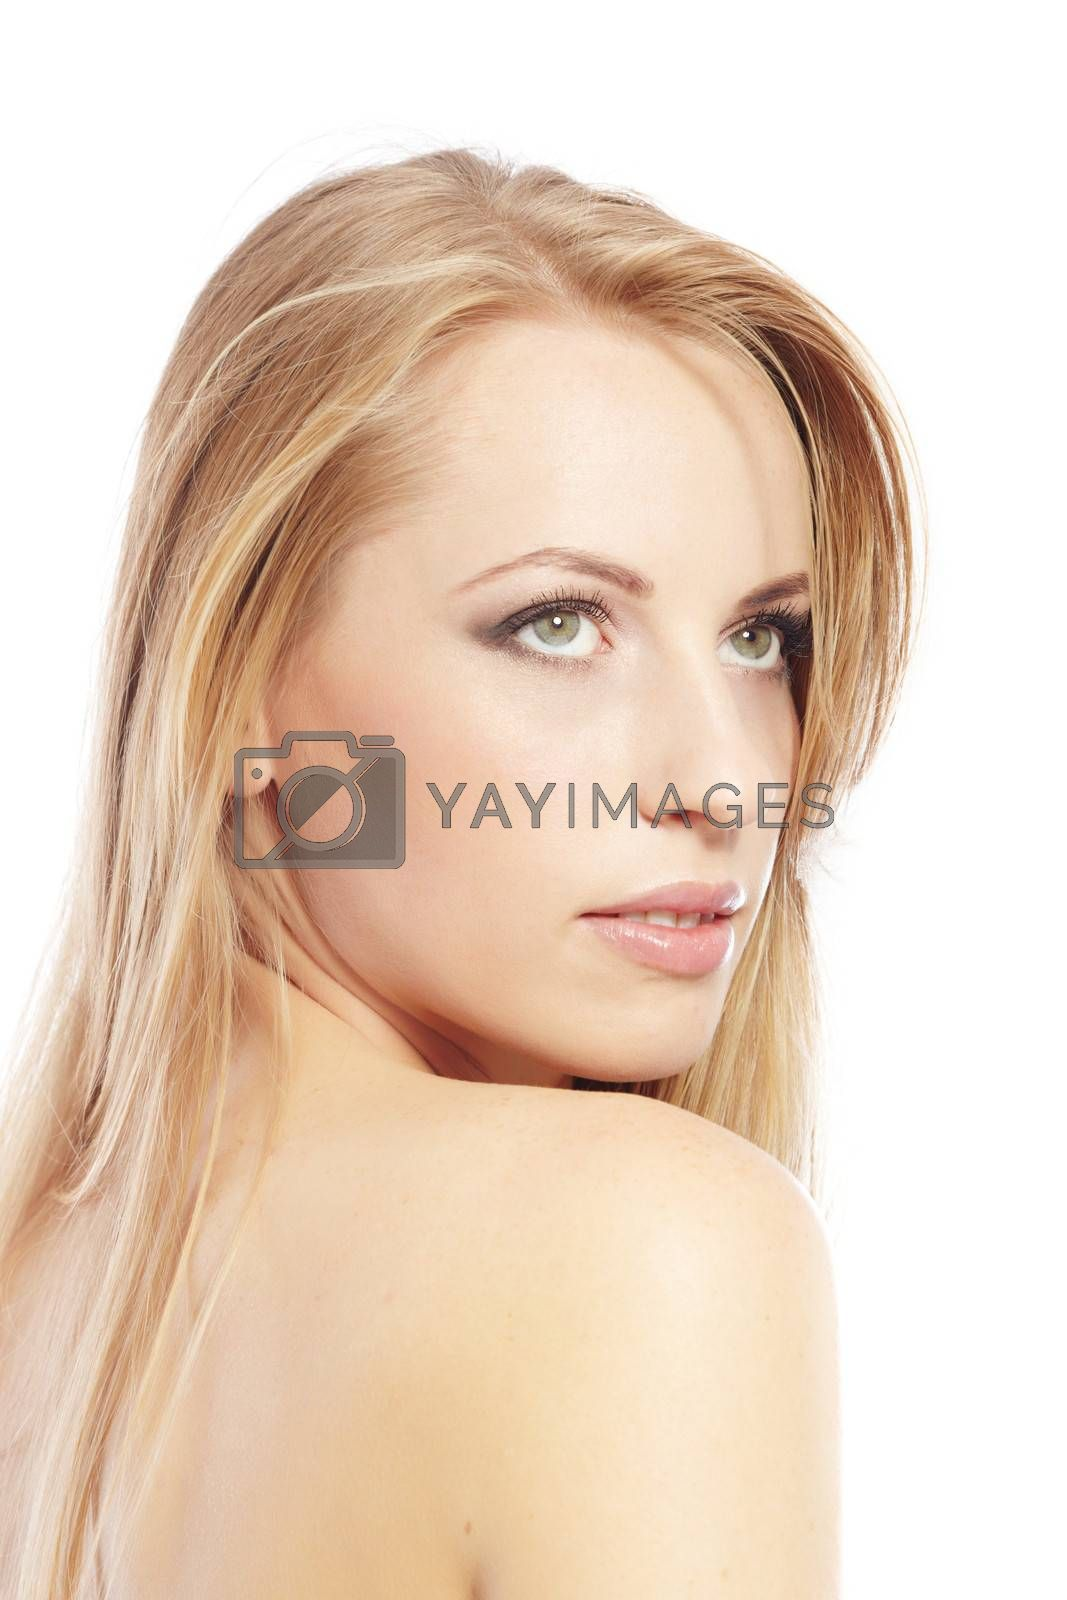 Sexy lady with perfect makeup and good skin on a white background